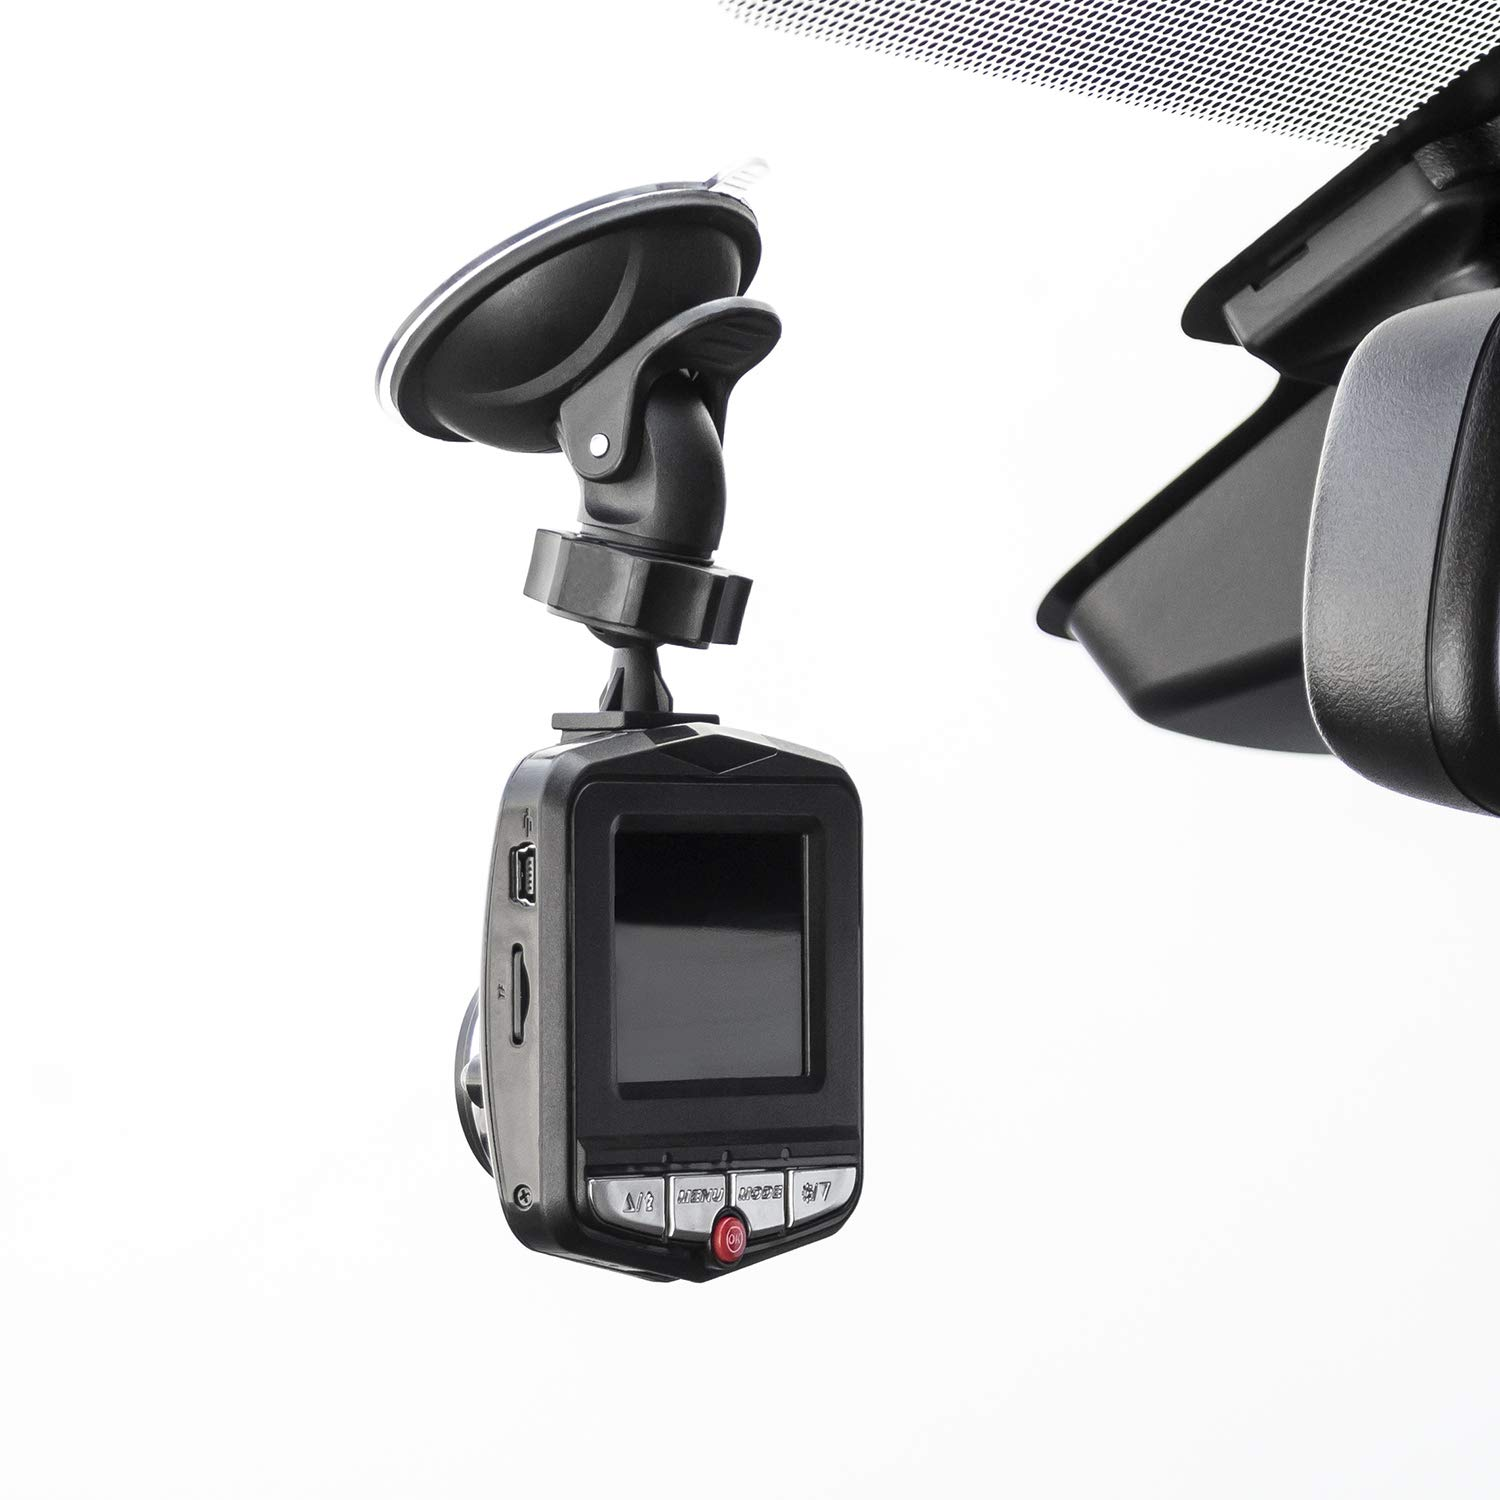 Loop Recording Night View 720P Car DVR Dash Camera with SD Memory Card Motion Detection 120 Degree Wide Angle View